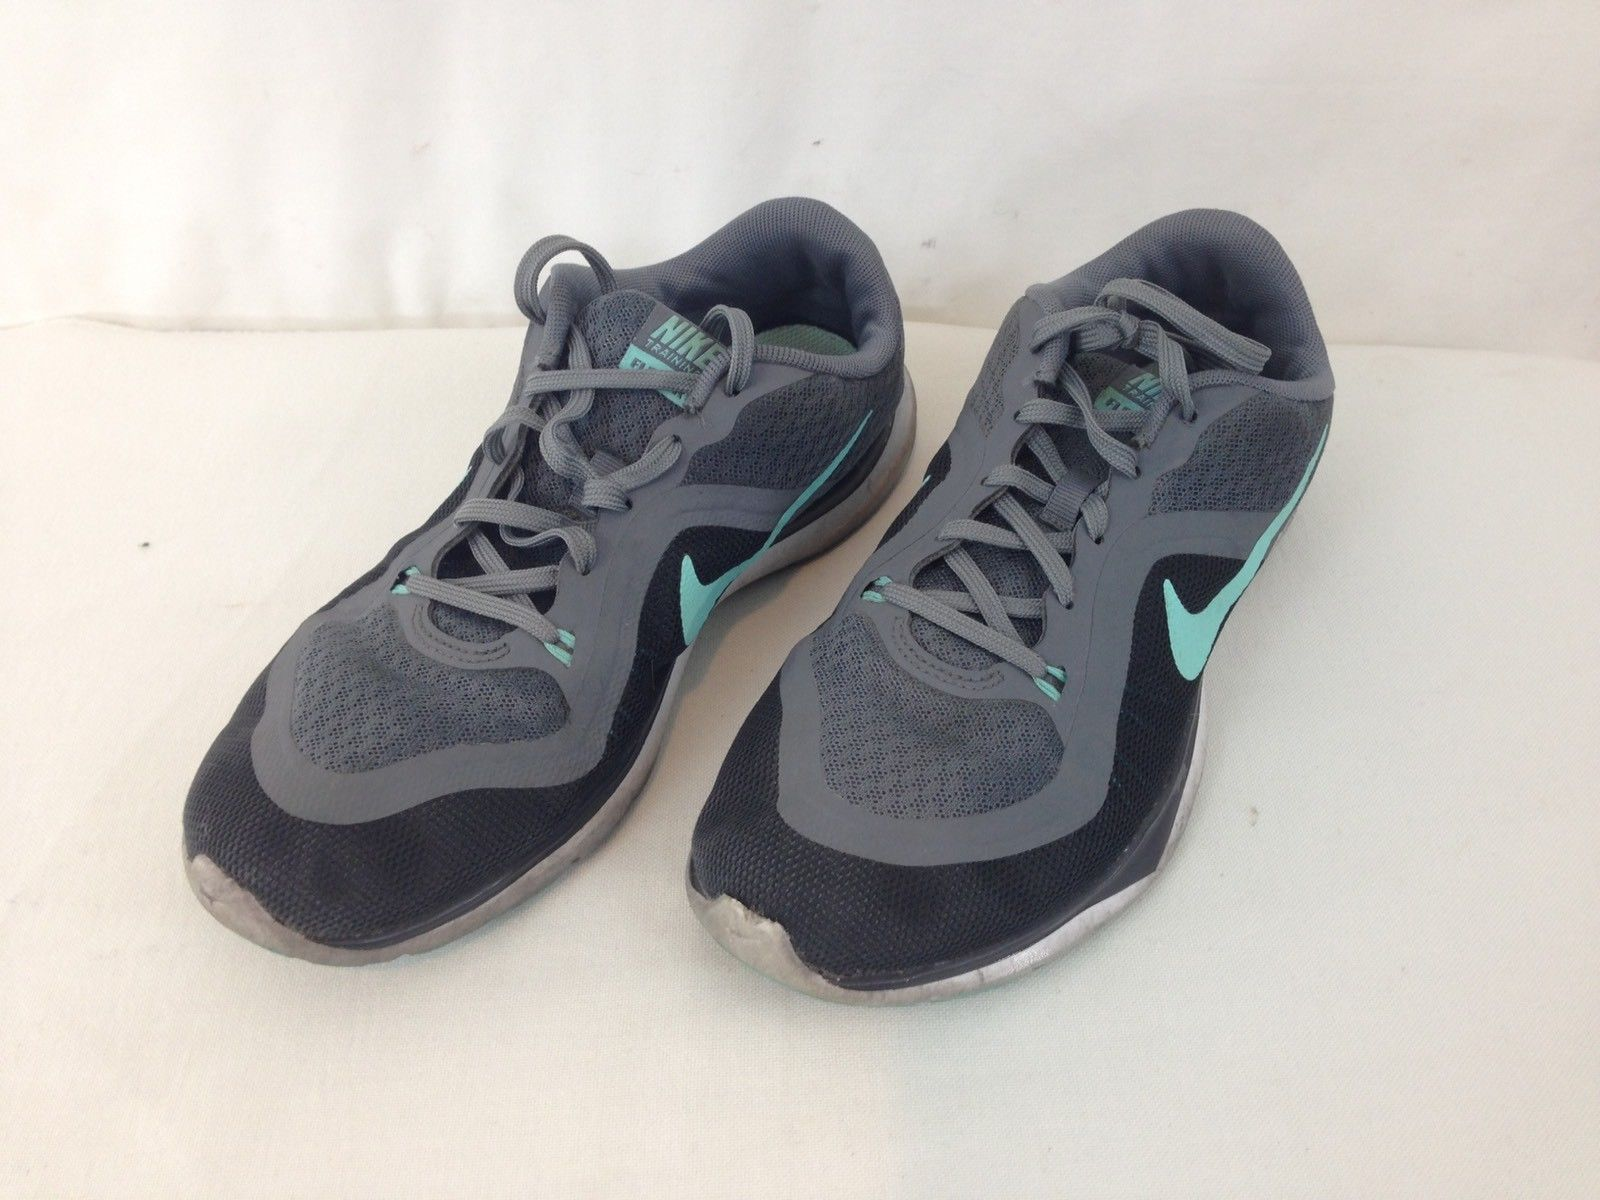 49a5e4f1bf903 S l1600. S l1600. Previous. Nike 831217-004 Training Flex Tr 6 Womens size  8 Gray Teal Walking Running Shoes